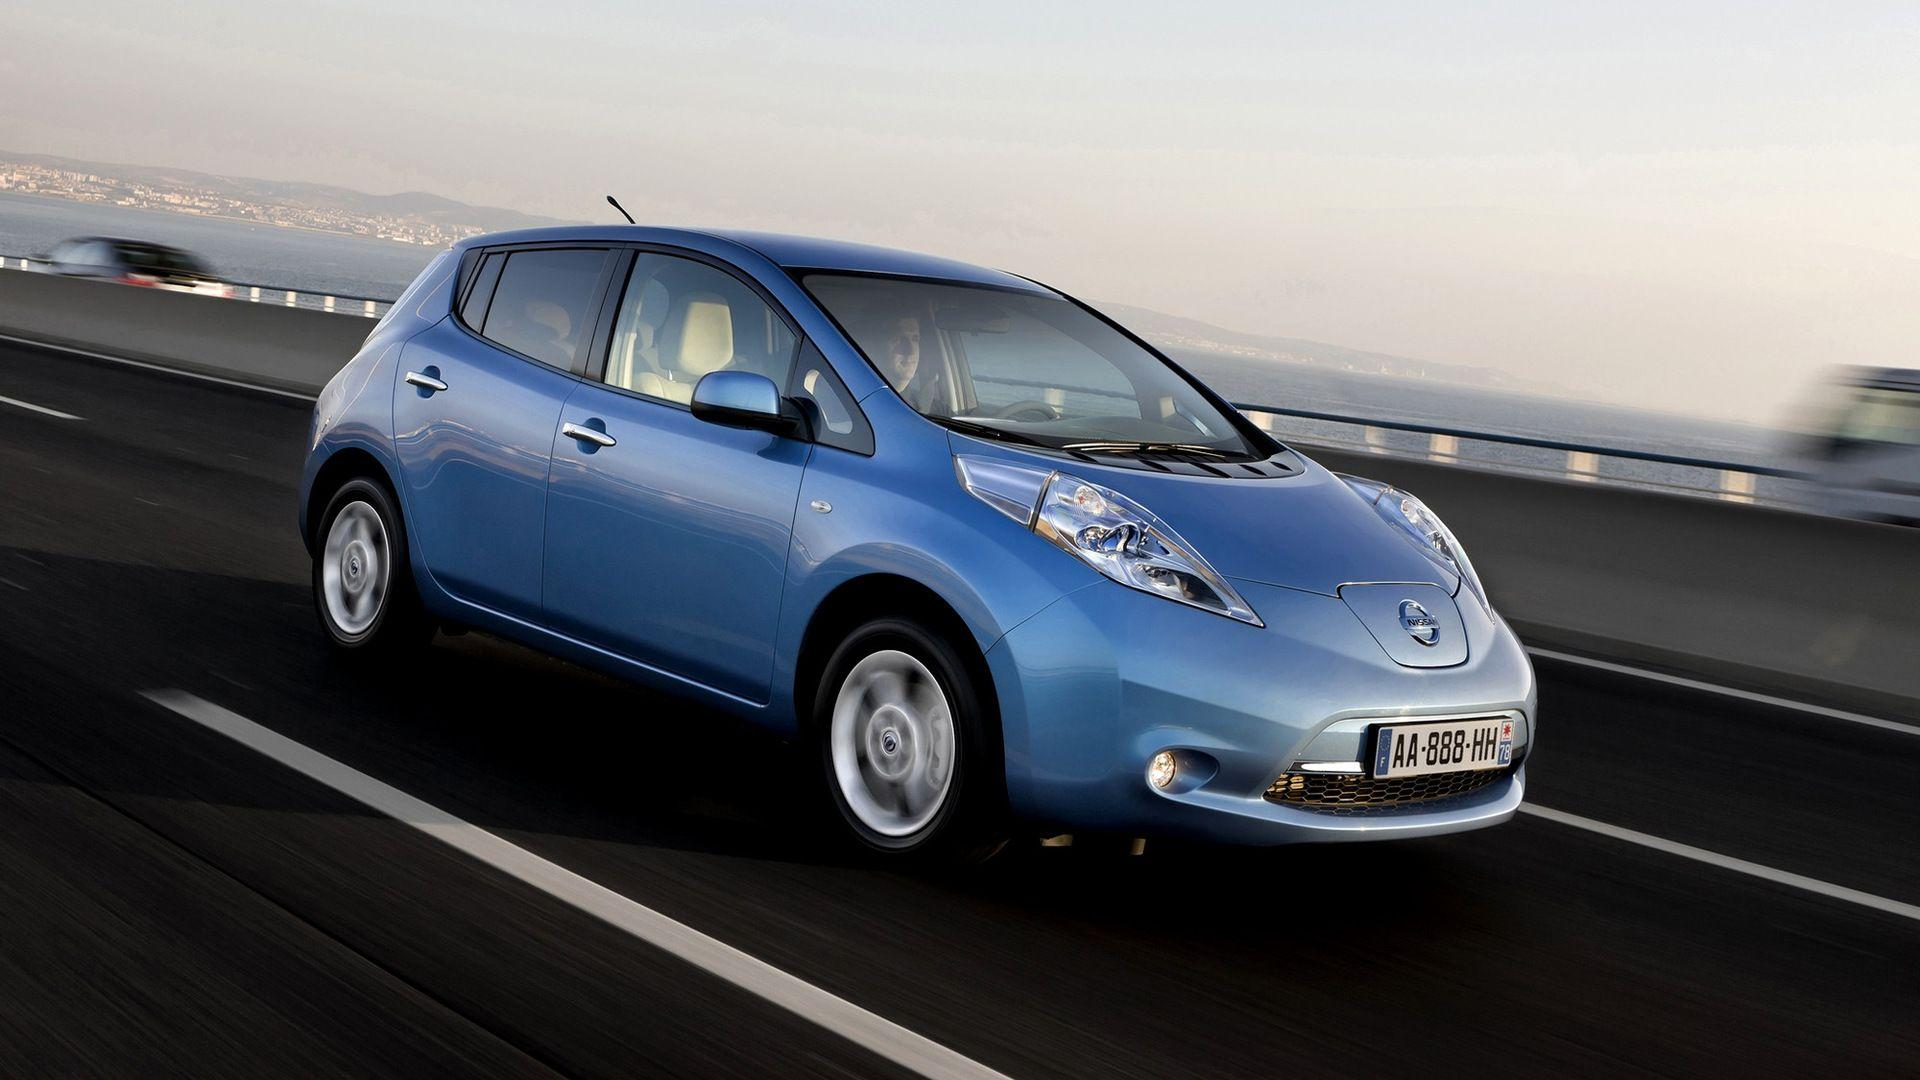 Nissan Leaf (2011) Wallpapers and HD Images - Car Pixel